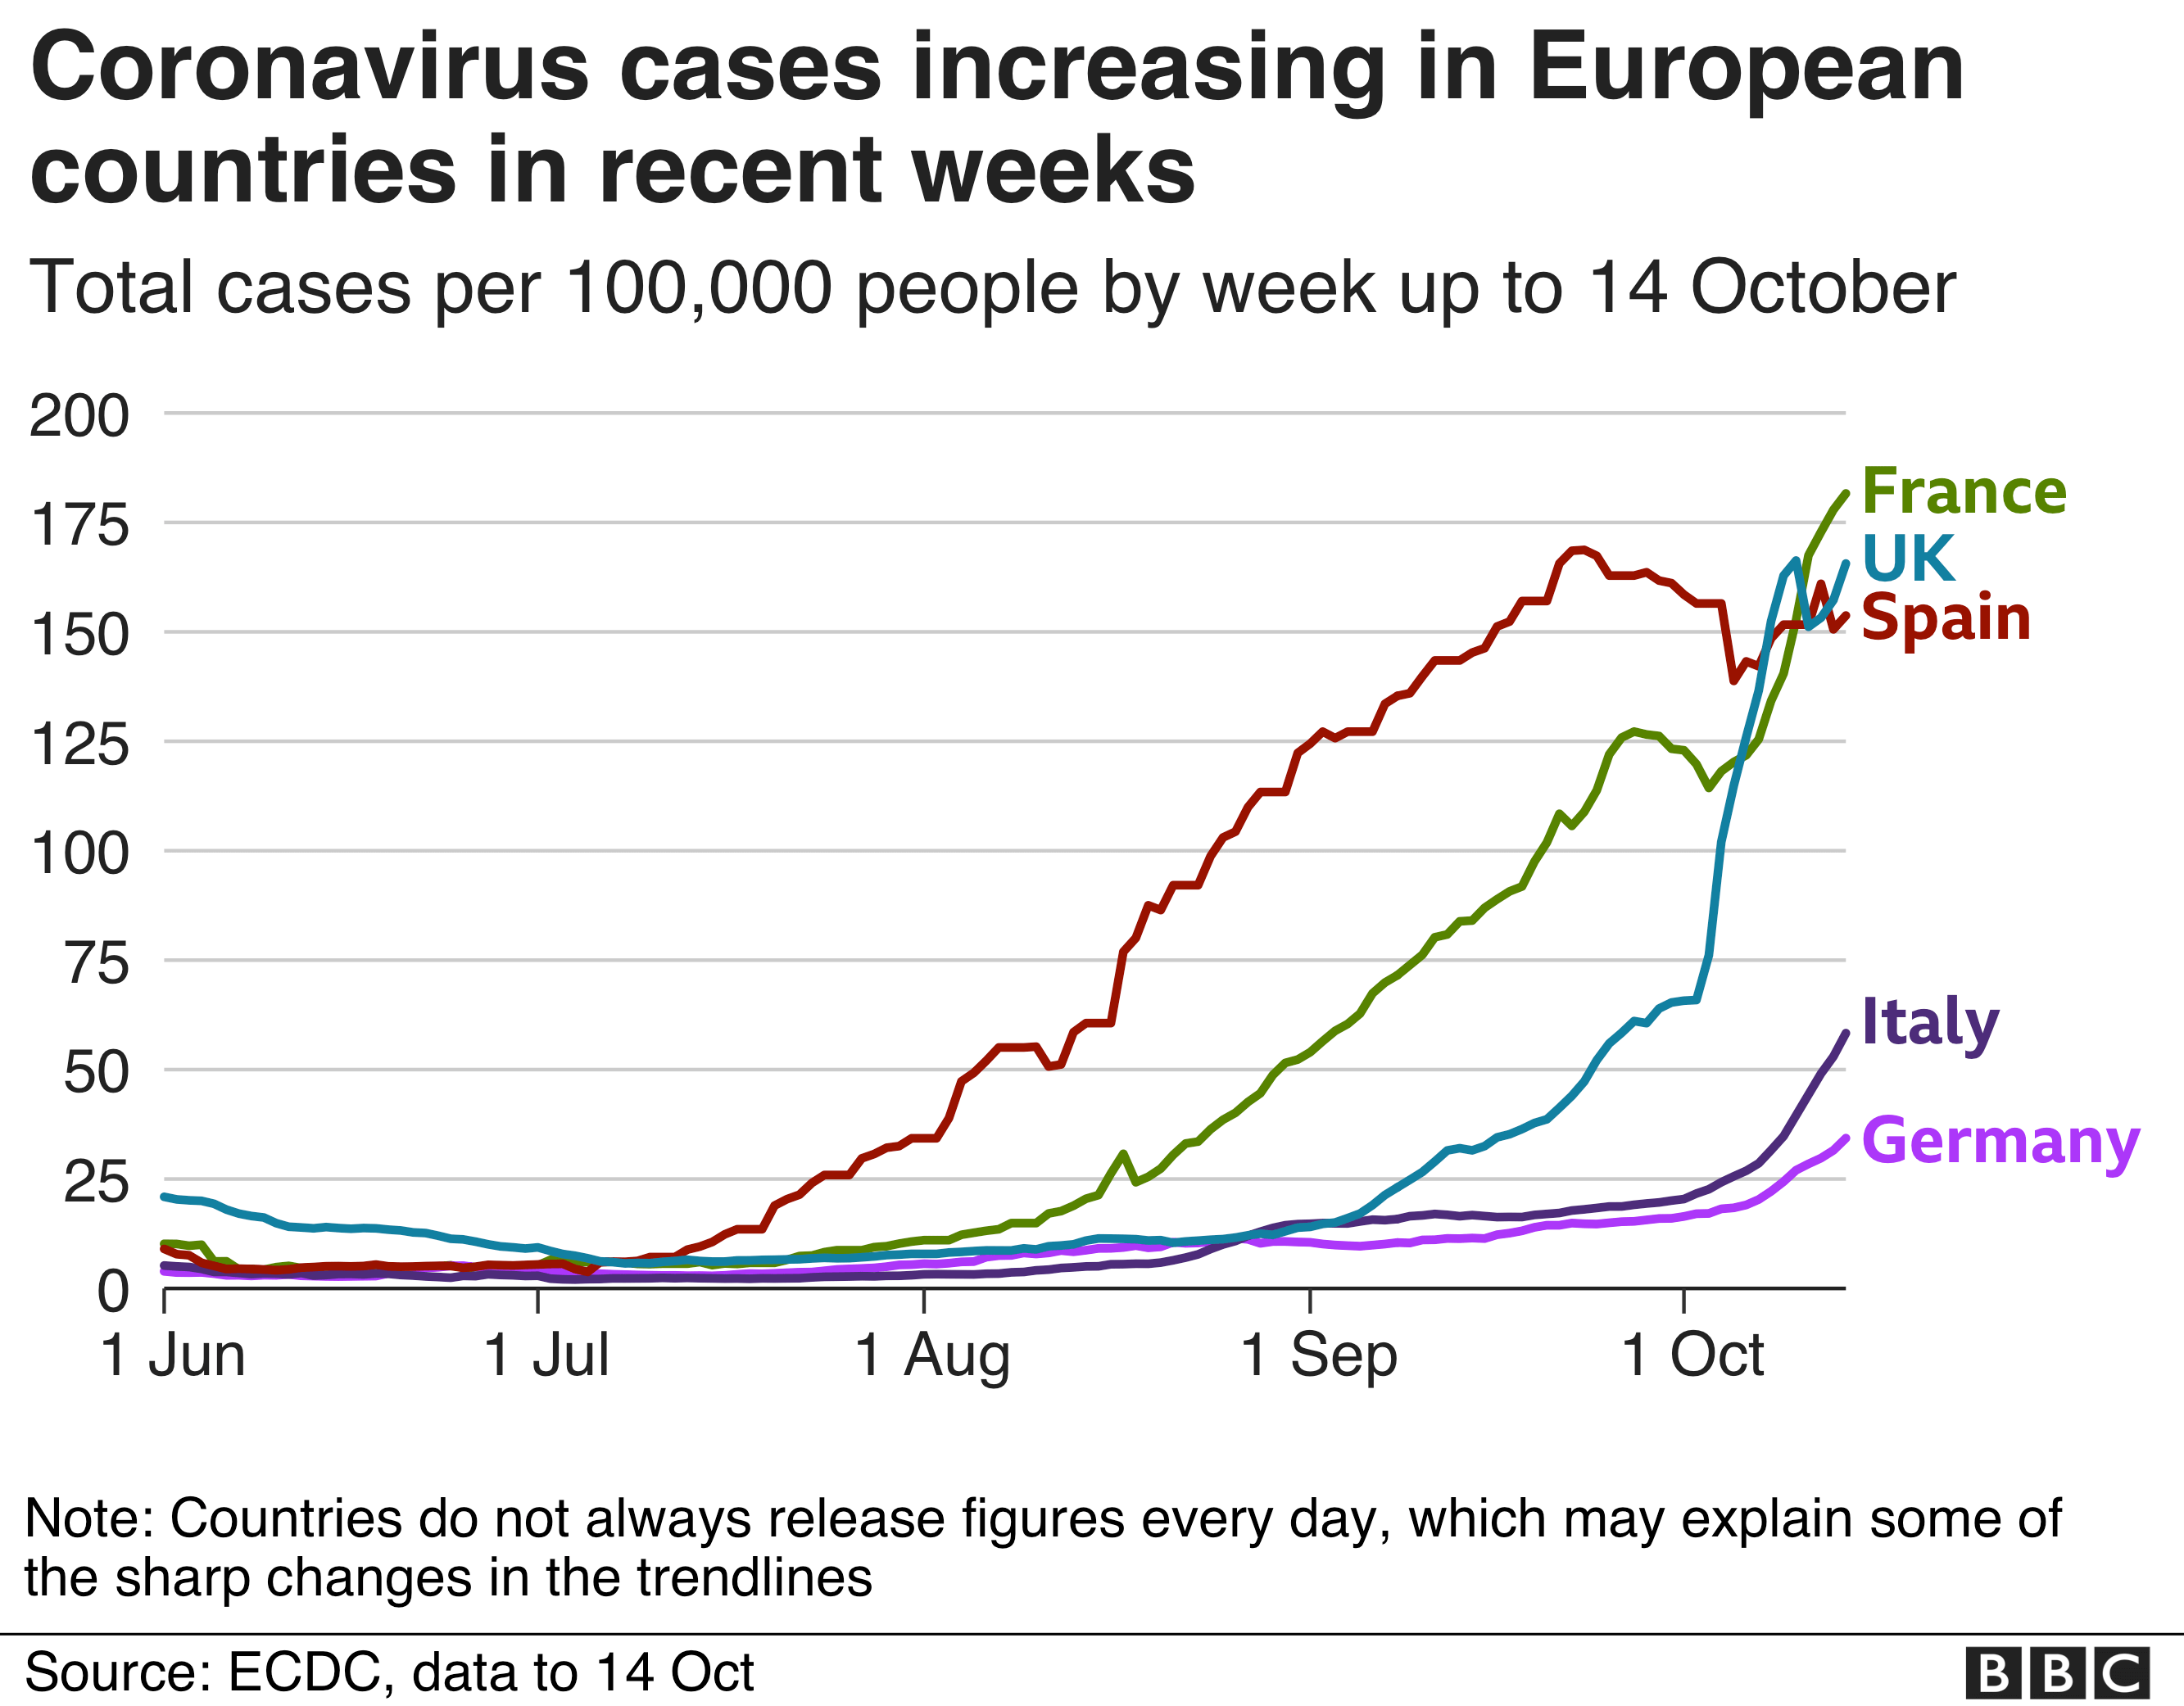 Line chart showing cases increasing in France. UK, Spain, Italy and Germany